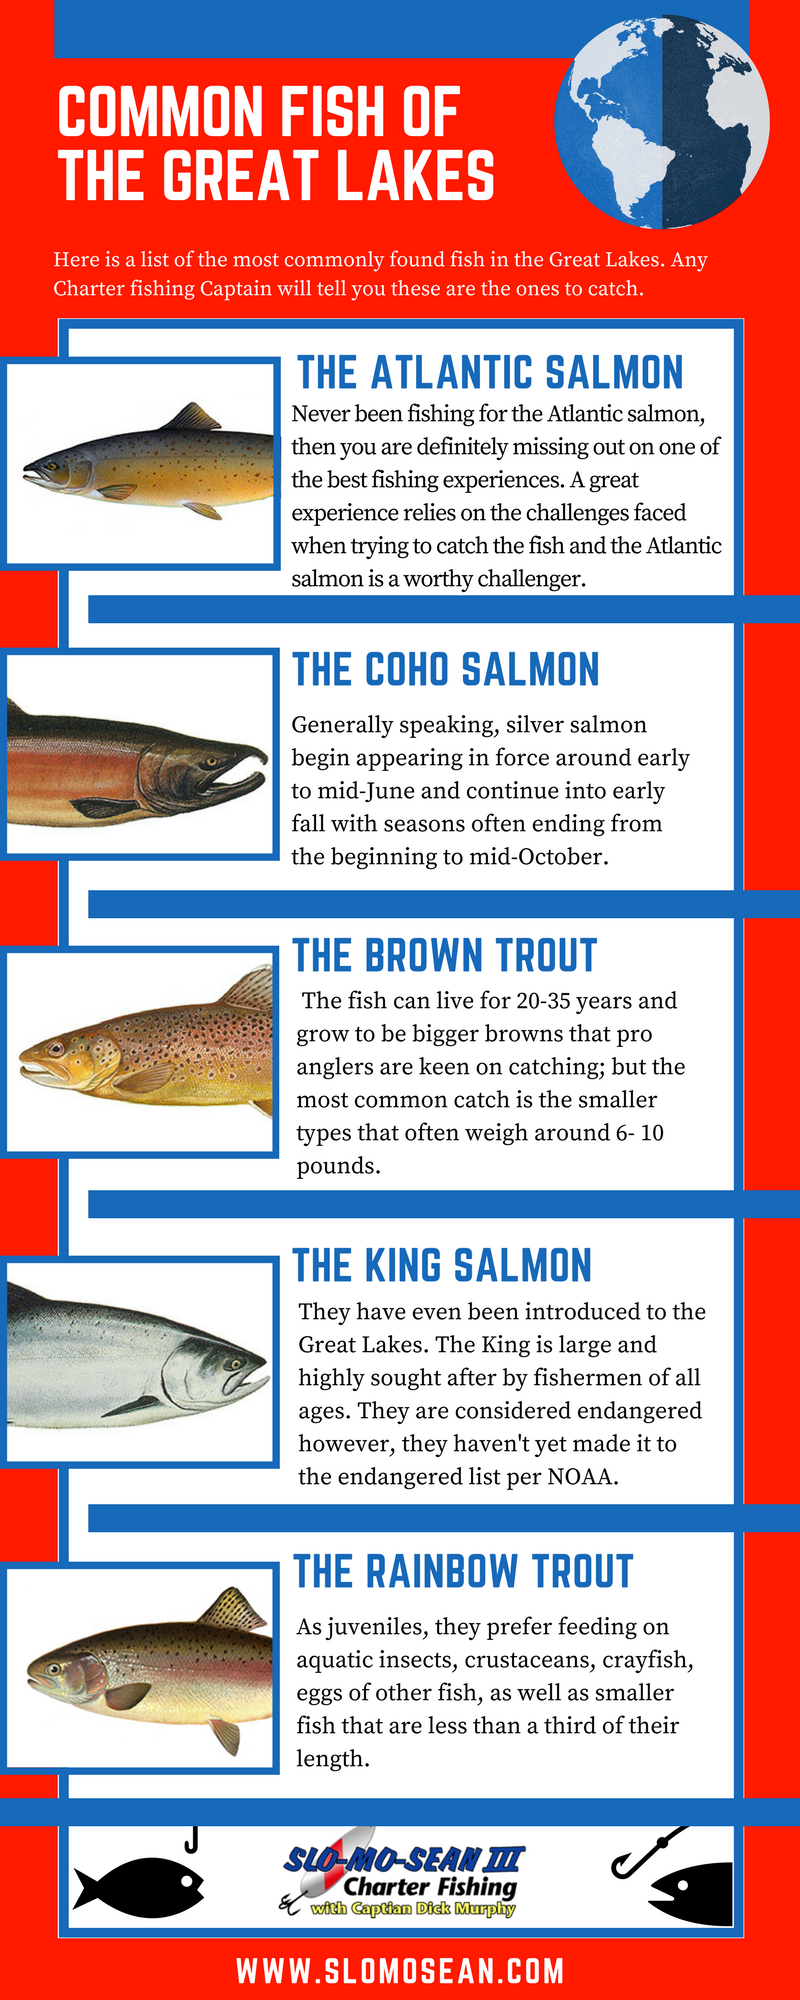 Different types of fish caught in the Great Lakes